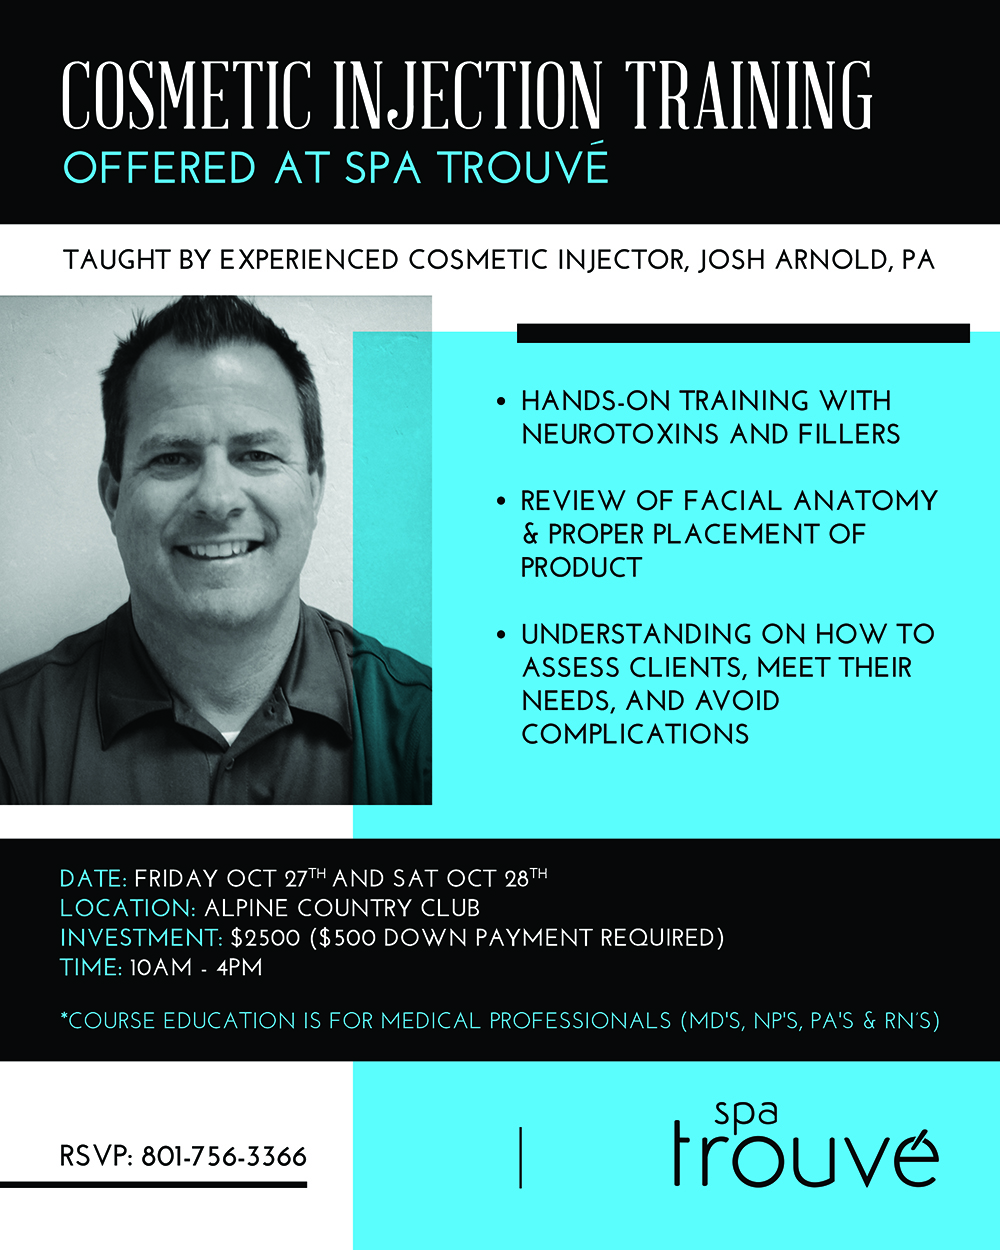 Cosmetic injection training spa trouv for 27th street salon salt lake city